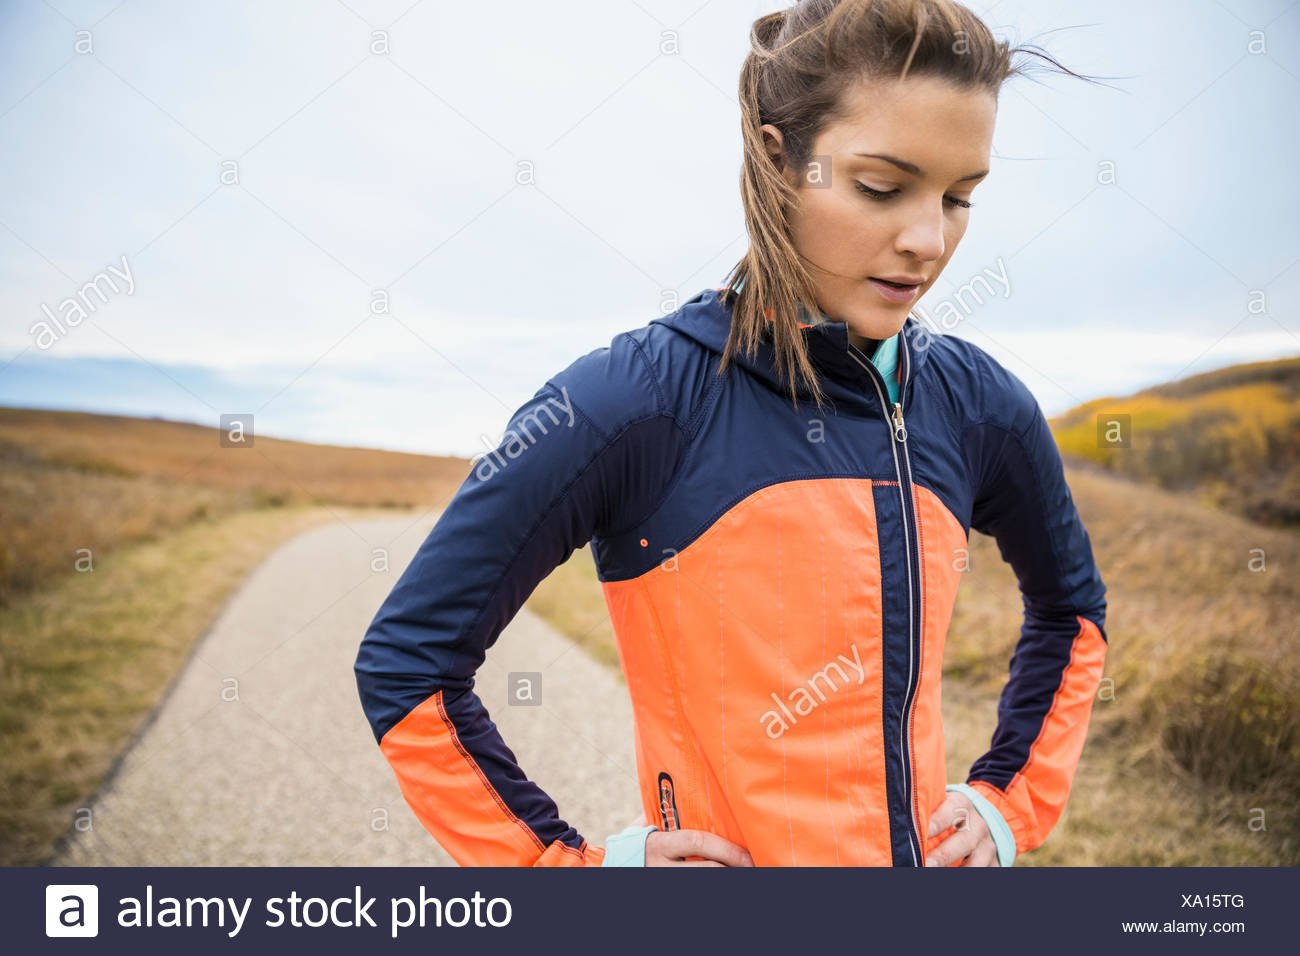 Runner resting on rural path - Stock Image